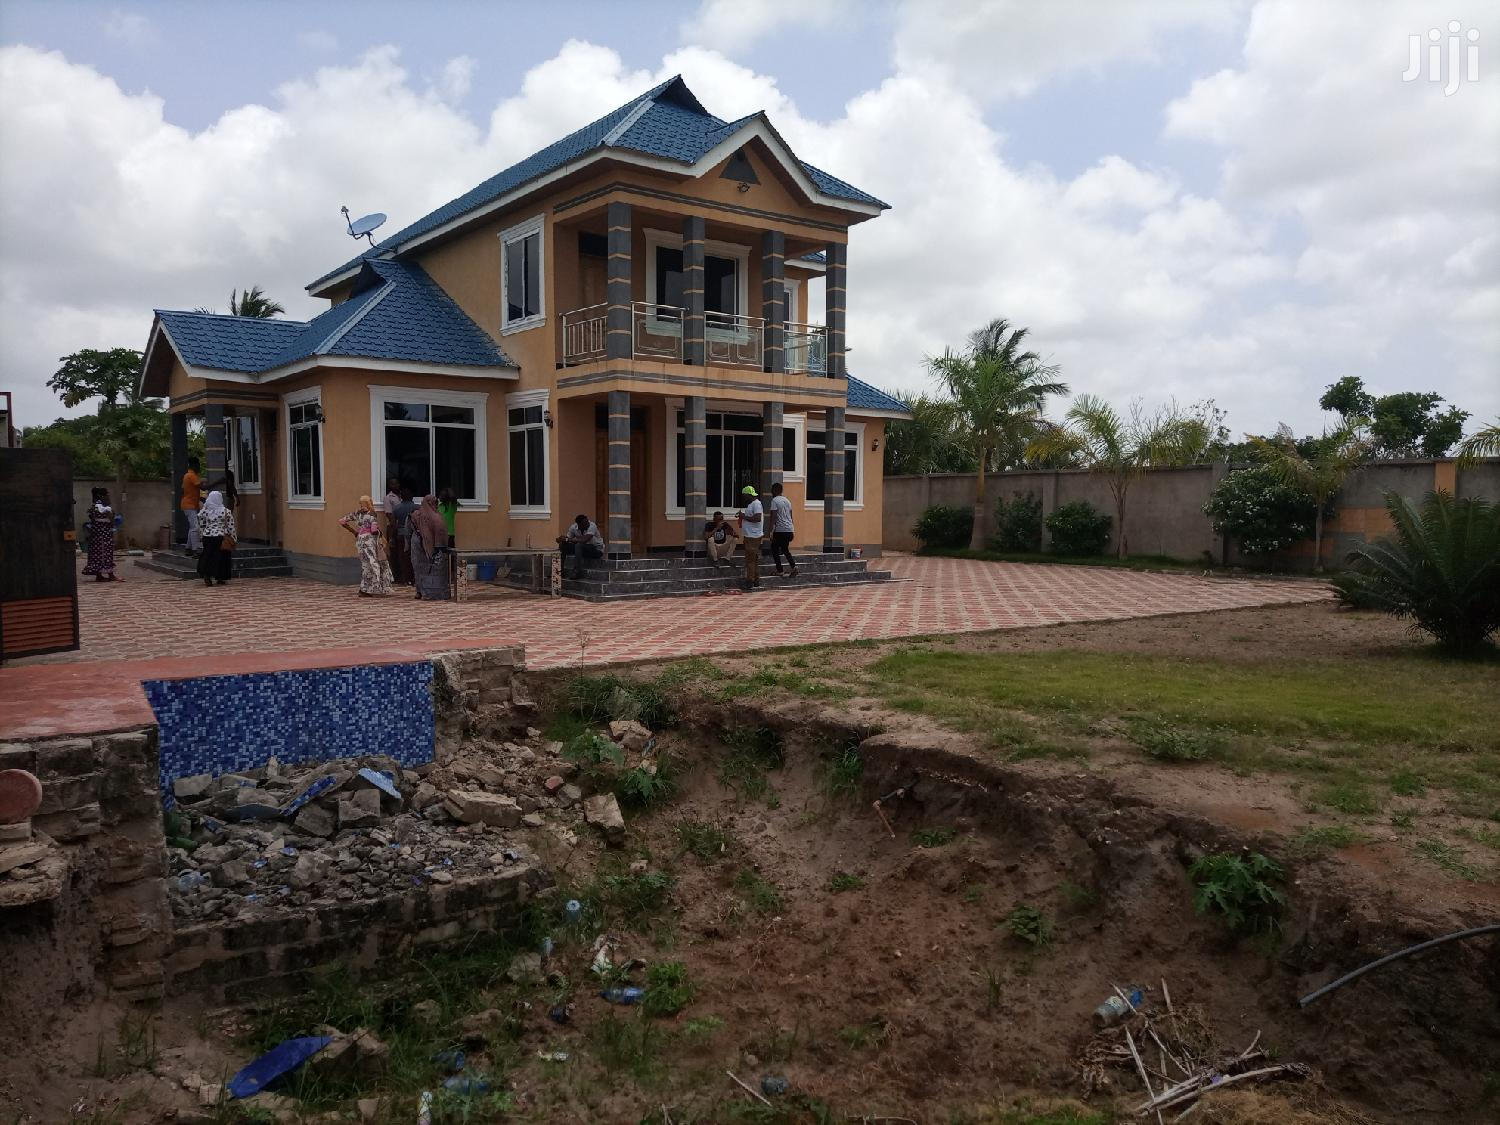 4 Bedroom House In Kigamboni For Sale | Houses & Apartments For Sale for sale in Temeke, Dar es Salaam, Tanzania